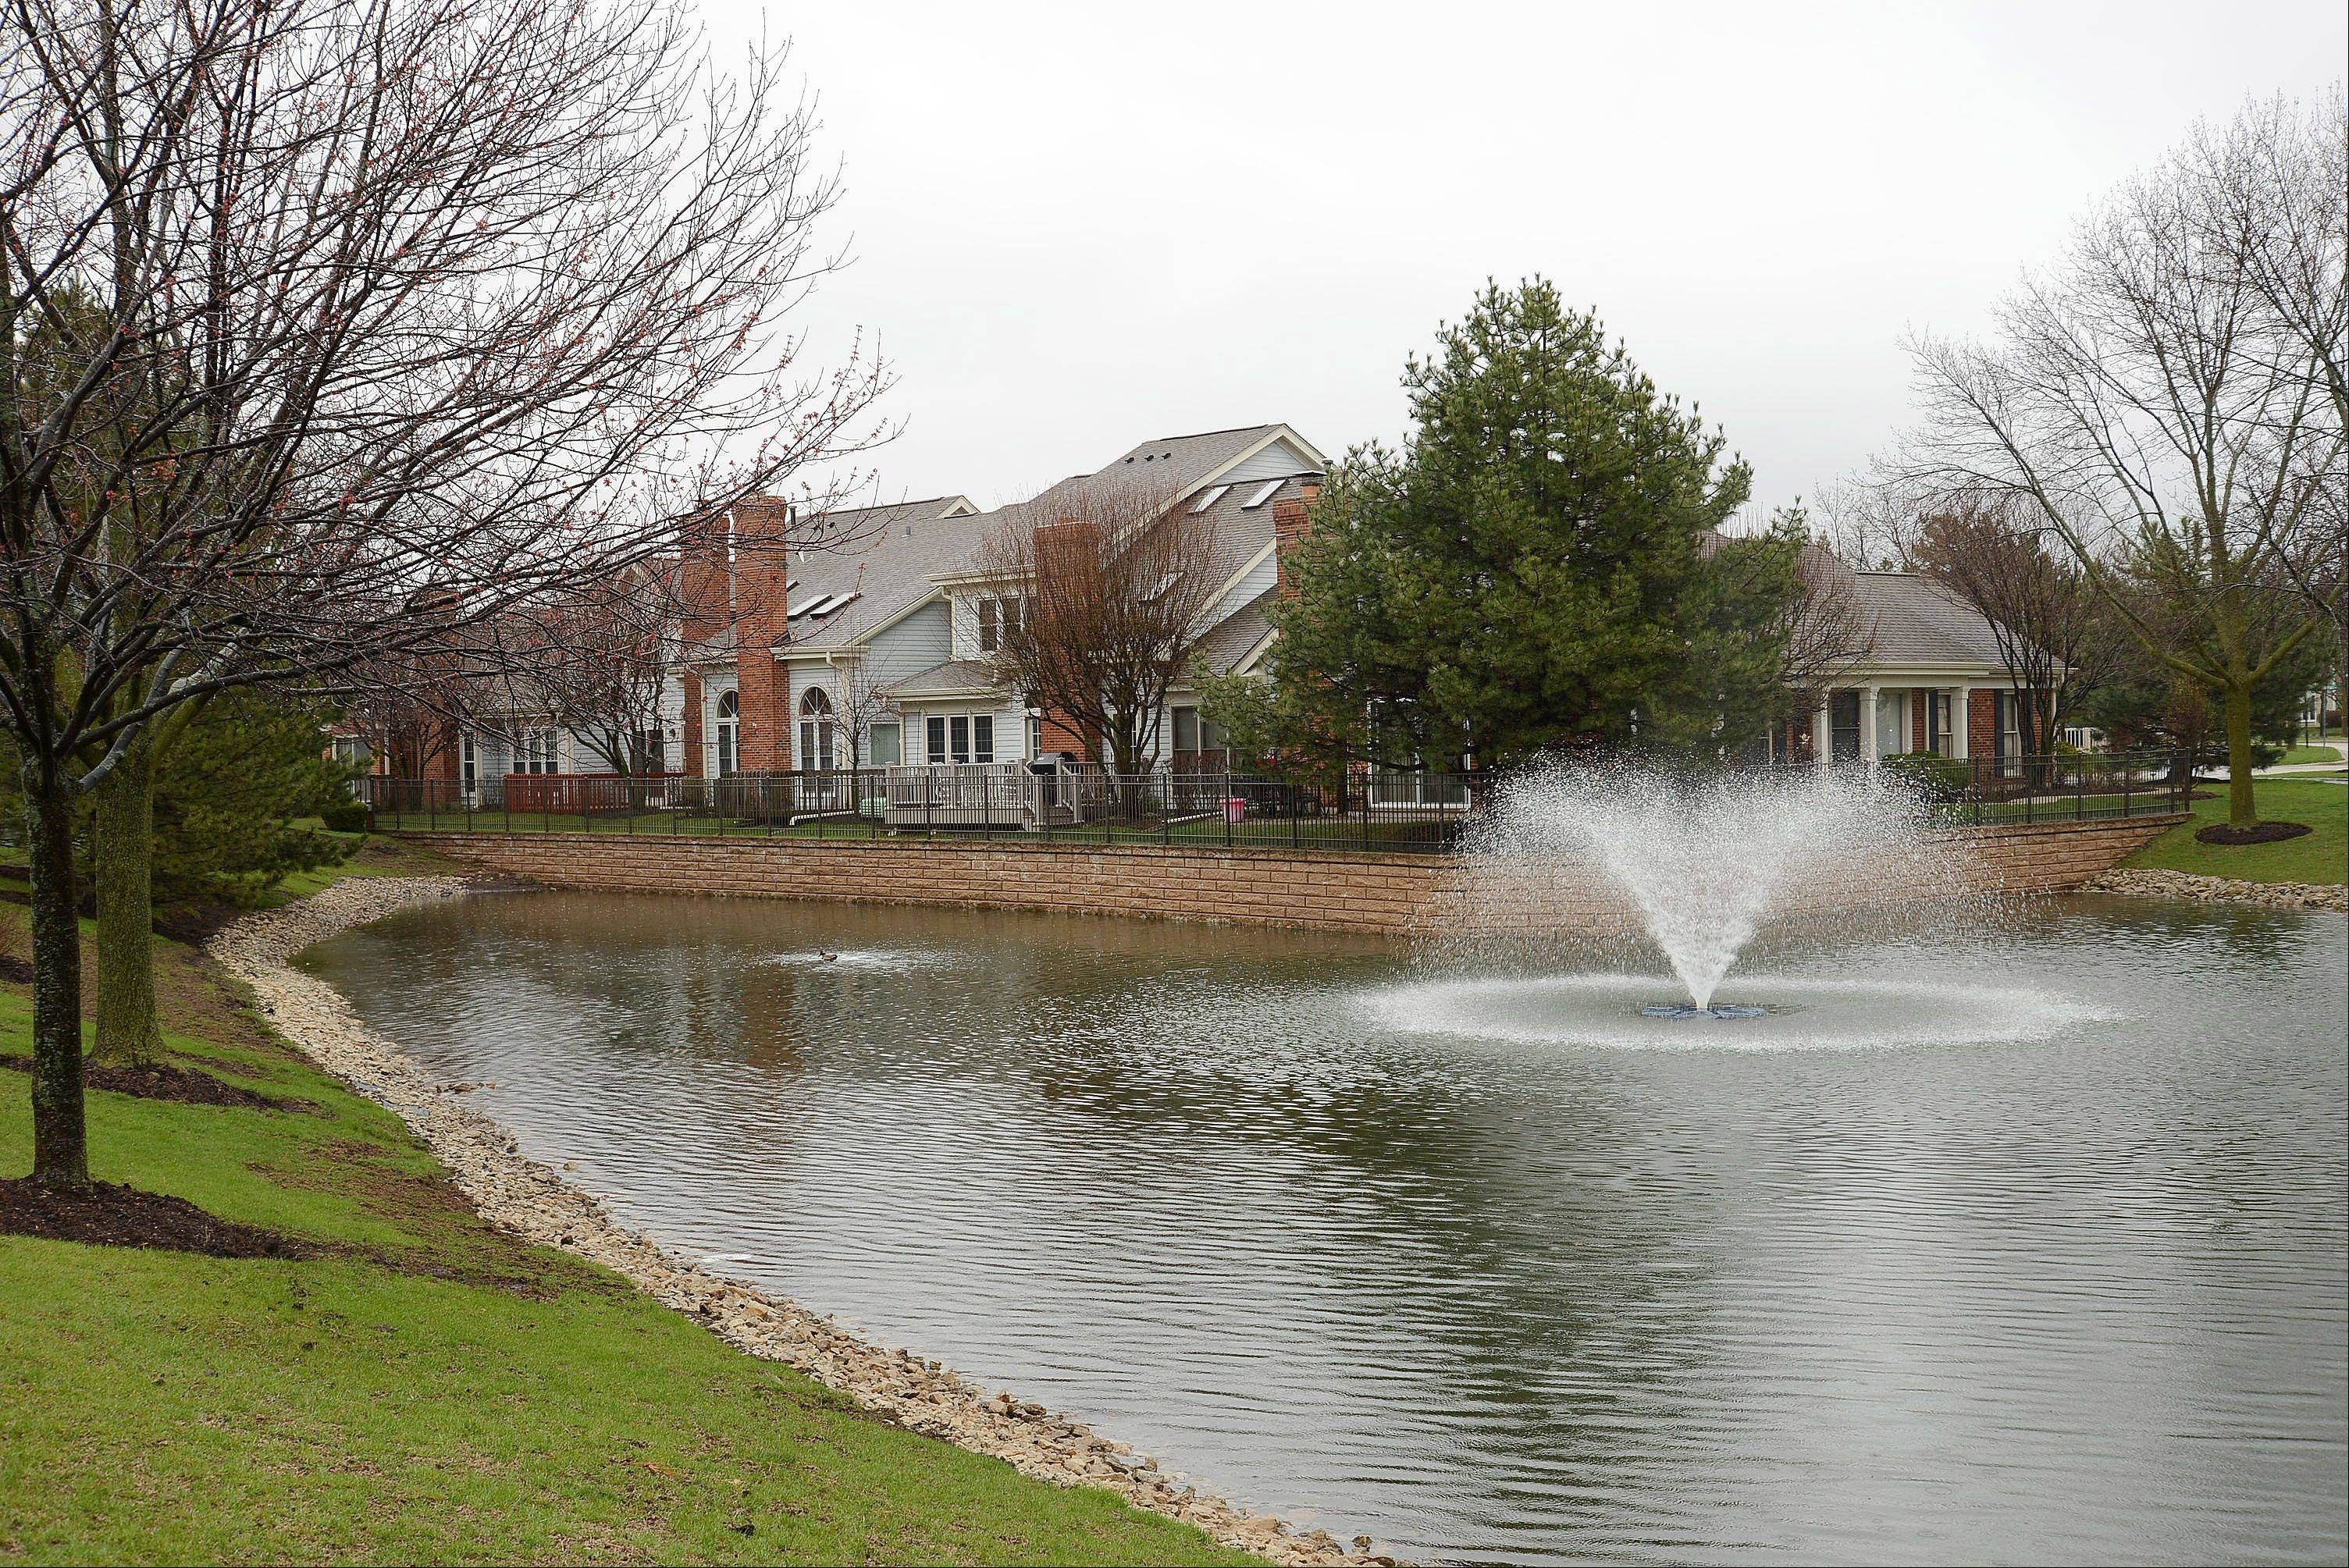 A pond and fountain provide a serene setting along Lake Arlington Drive.